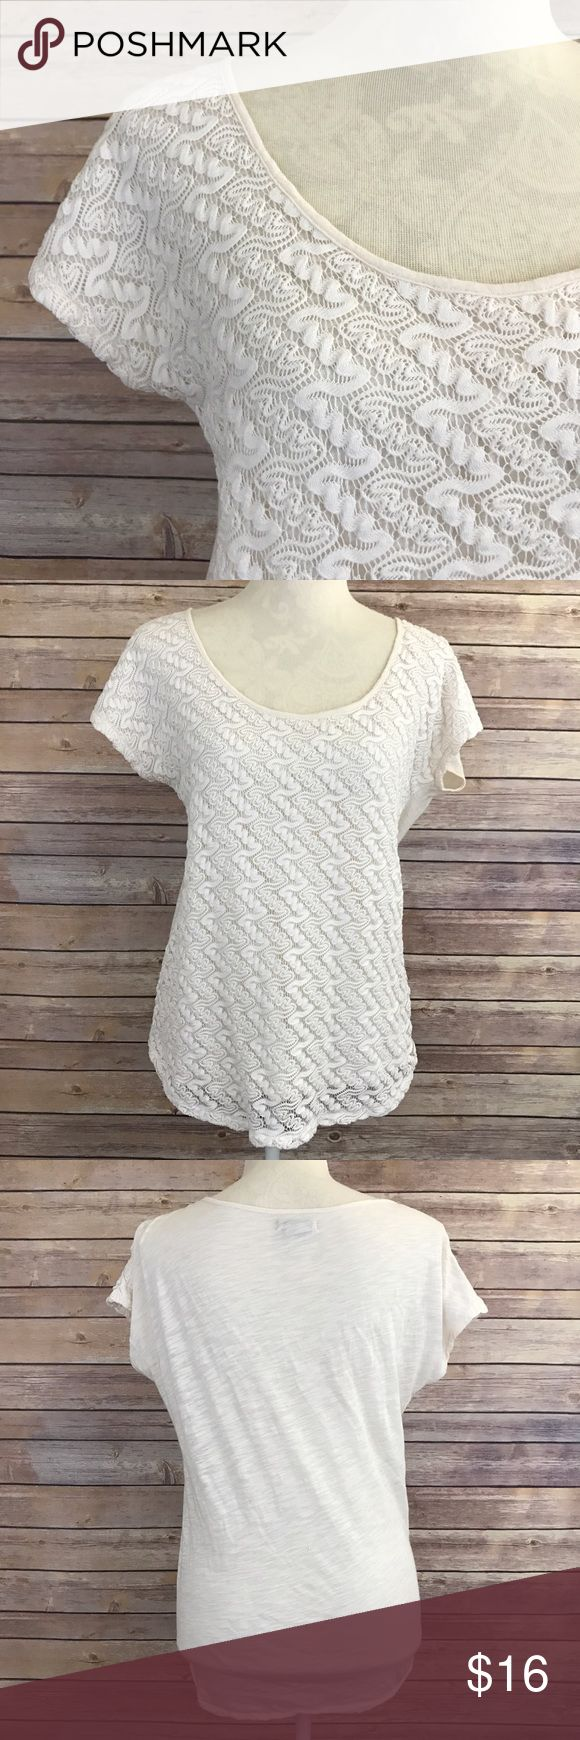 "Lucky Brand Cream Crochet Short Sleeve Top L A1 Bust: 21"" Length: 26.5""  Condition: No Rips; No Stains  60% Cotton 40% Modal  📦I ship orders within 24 Hours! {Except Weekends}📦  🚫No Trades🚫No Holds🚫 Lucky Brand Tops Tees - Short Sleeve"